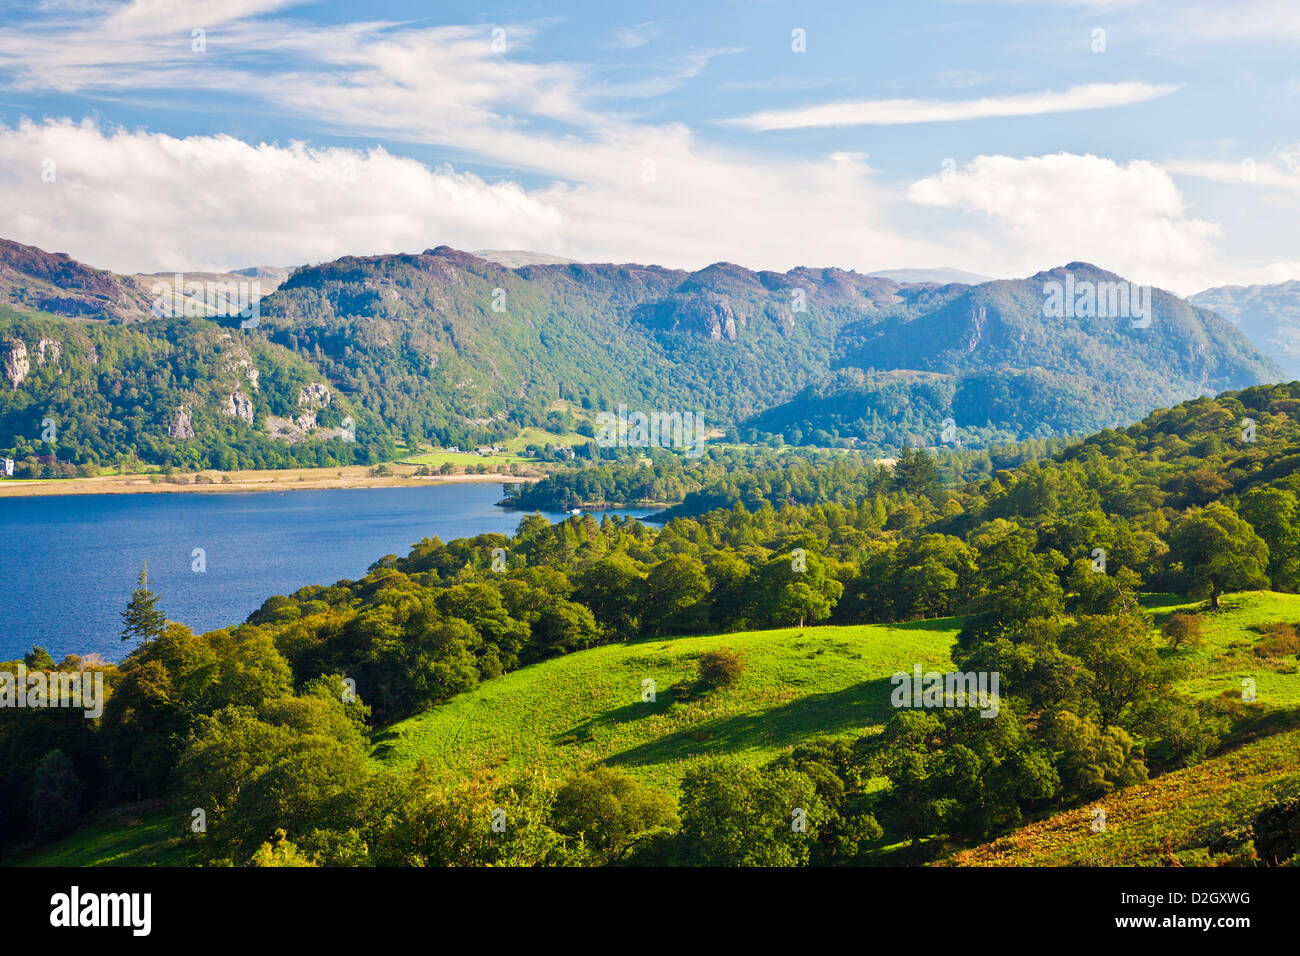 View over Derwent Water towards Walla Crag in the Lake District, Cumbria, England, UK - Stock Image